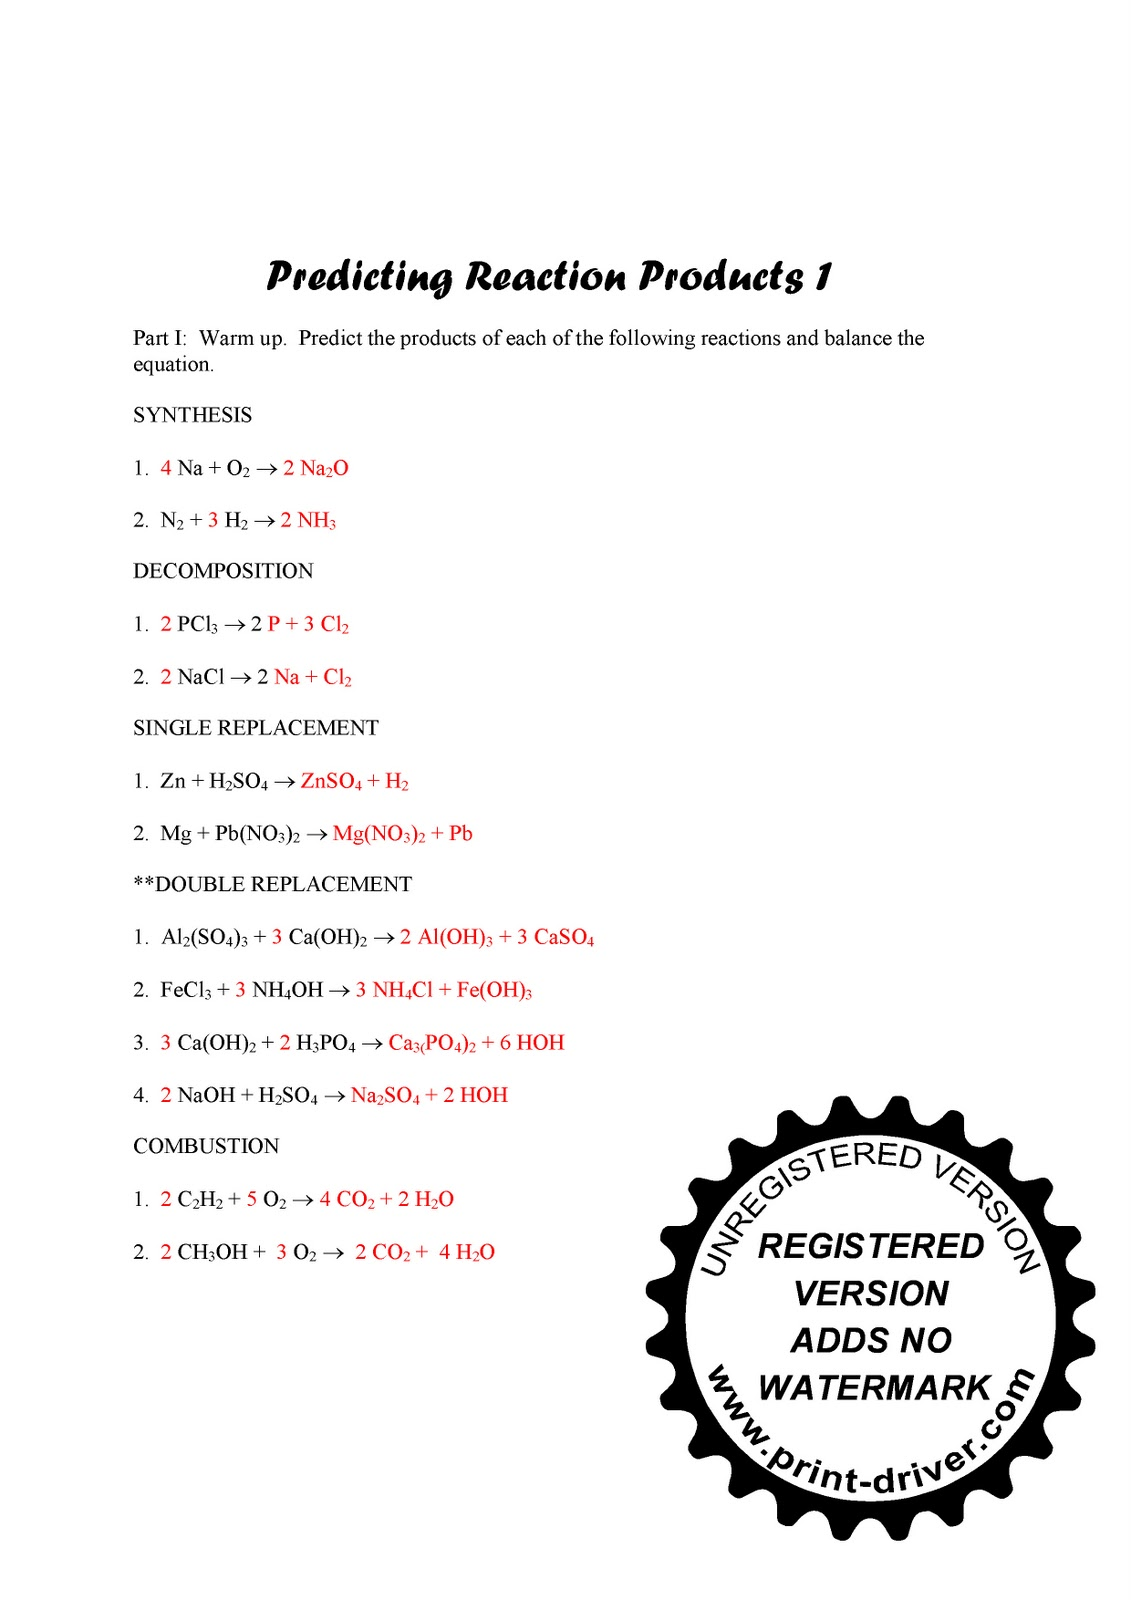 Mr Zehners Chemistry Class Friday Feb 11 2011 – Predicting Products Worksheet Answers